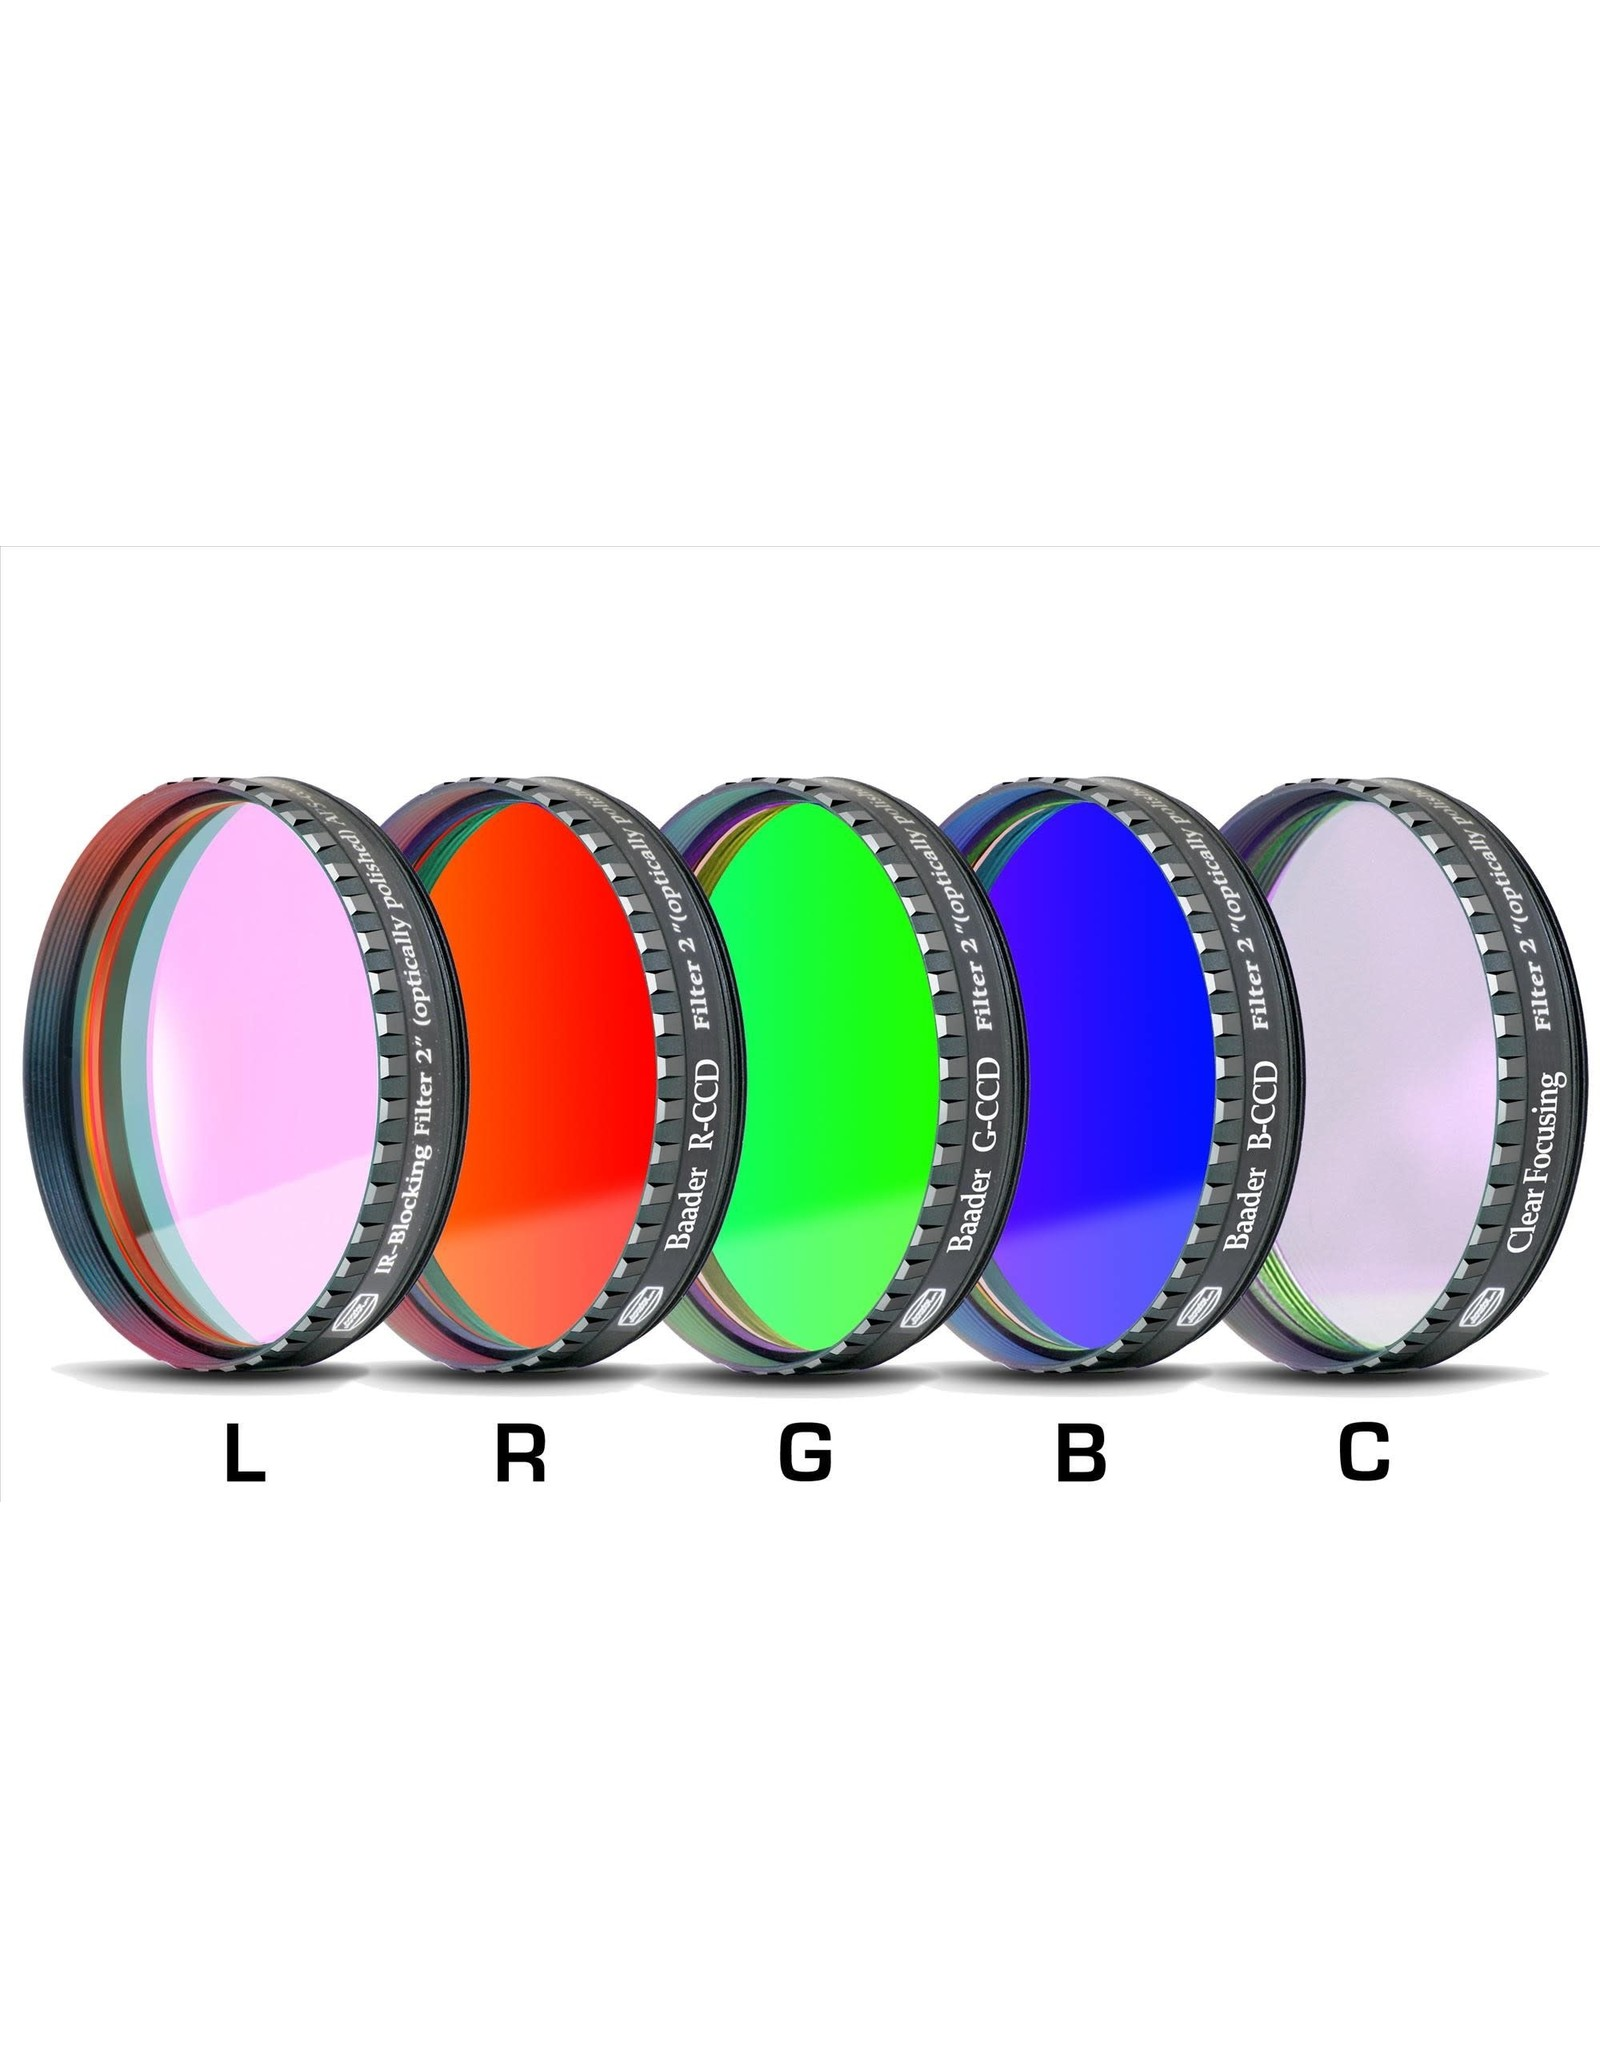 Baader Planetarium Baader L-RGB-C CCD-Filterset (Specify Size)